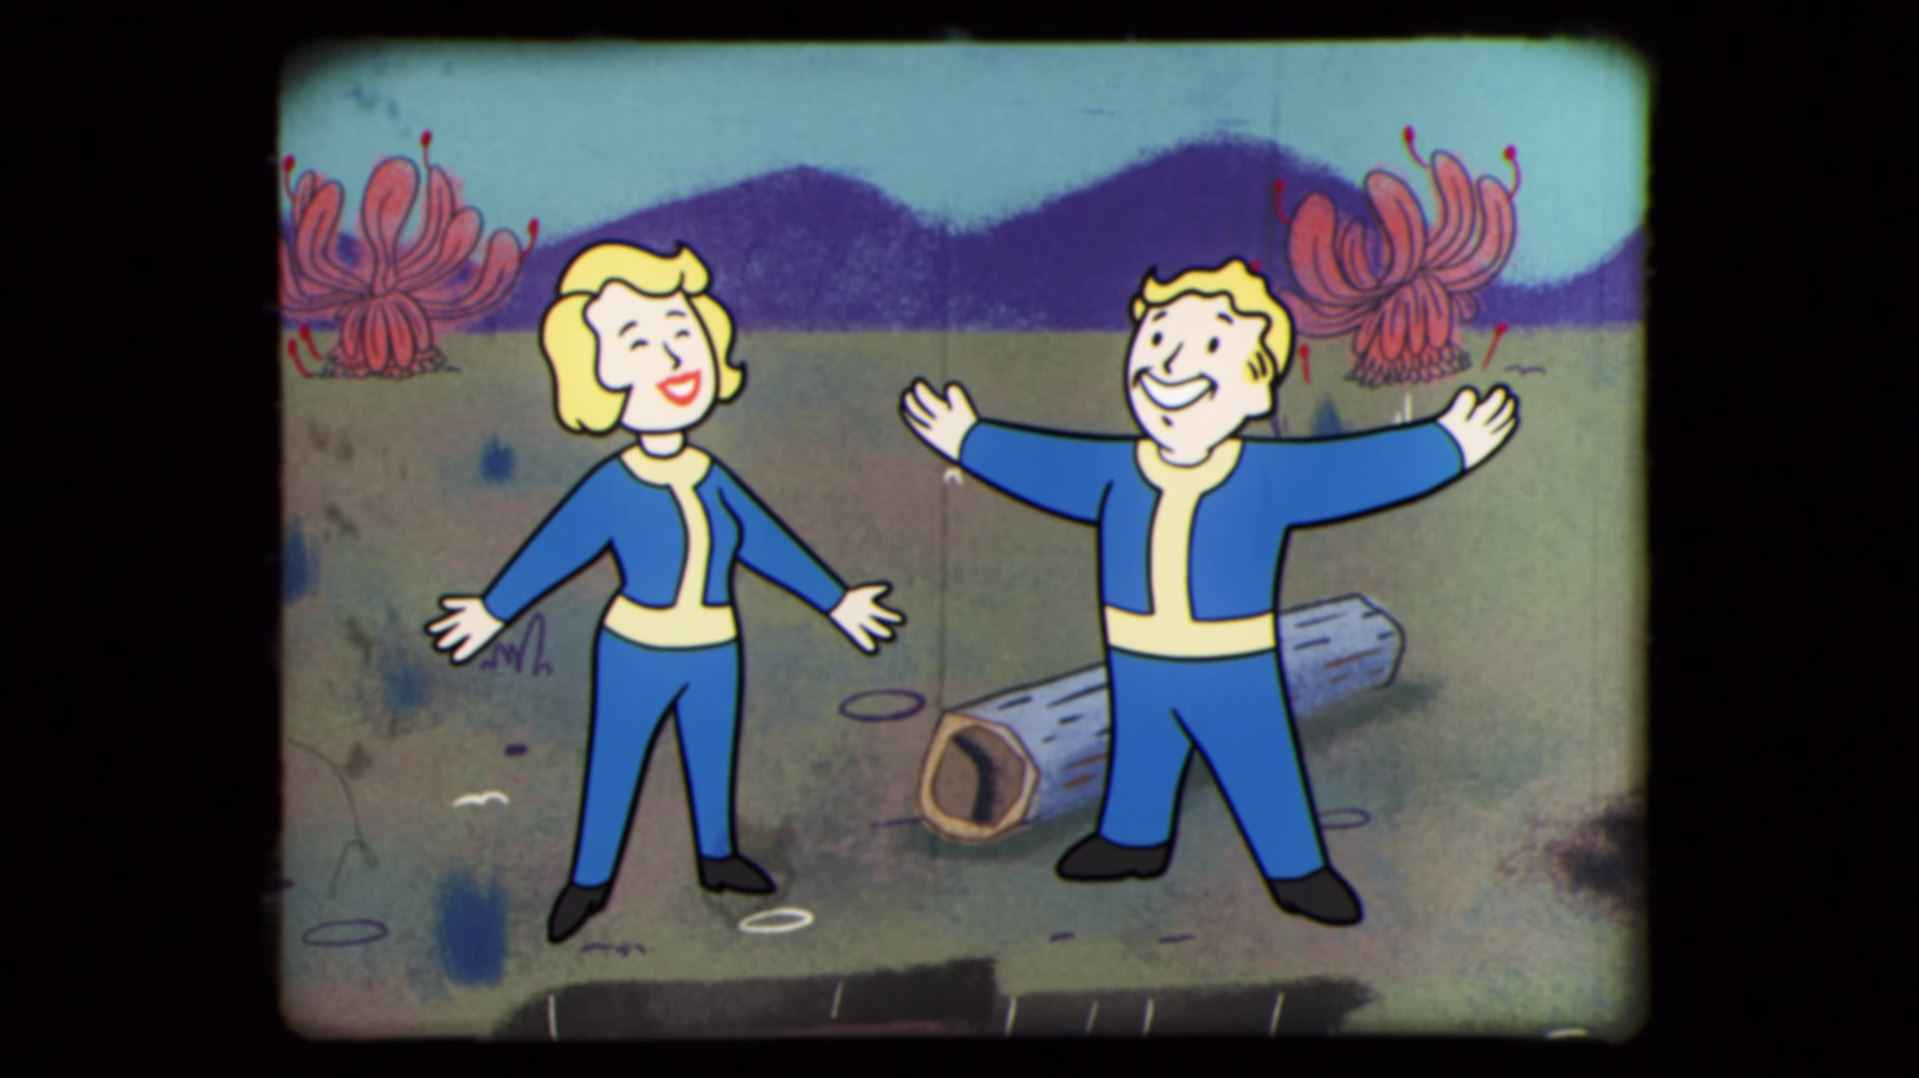 Fallout 76 Multiplayer Trailer Shows Off Co-operative Action